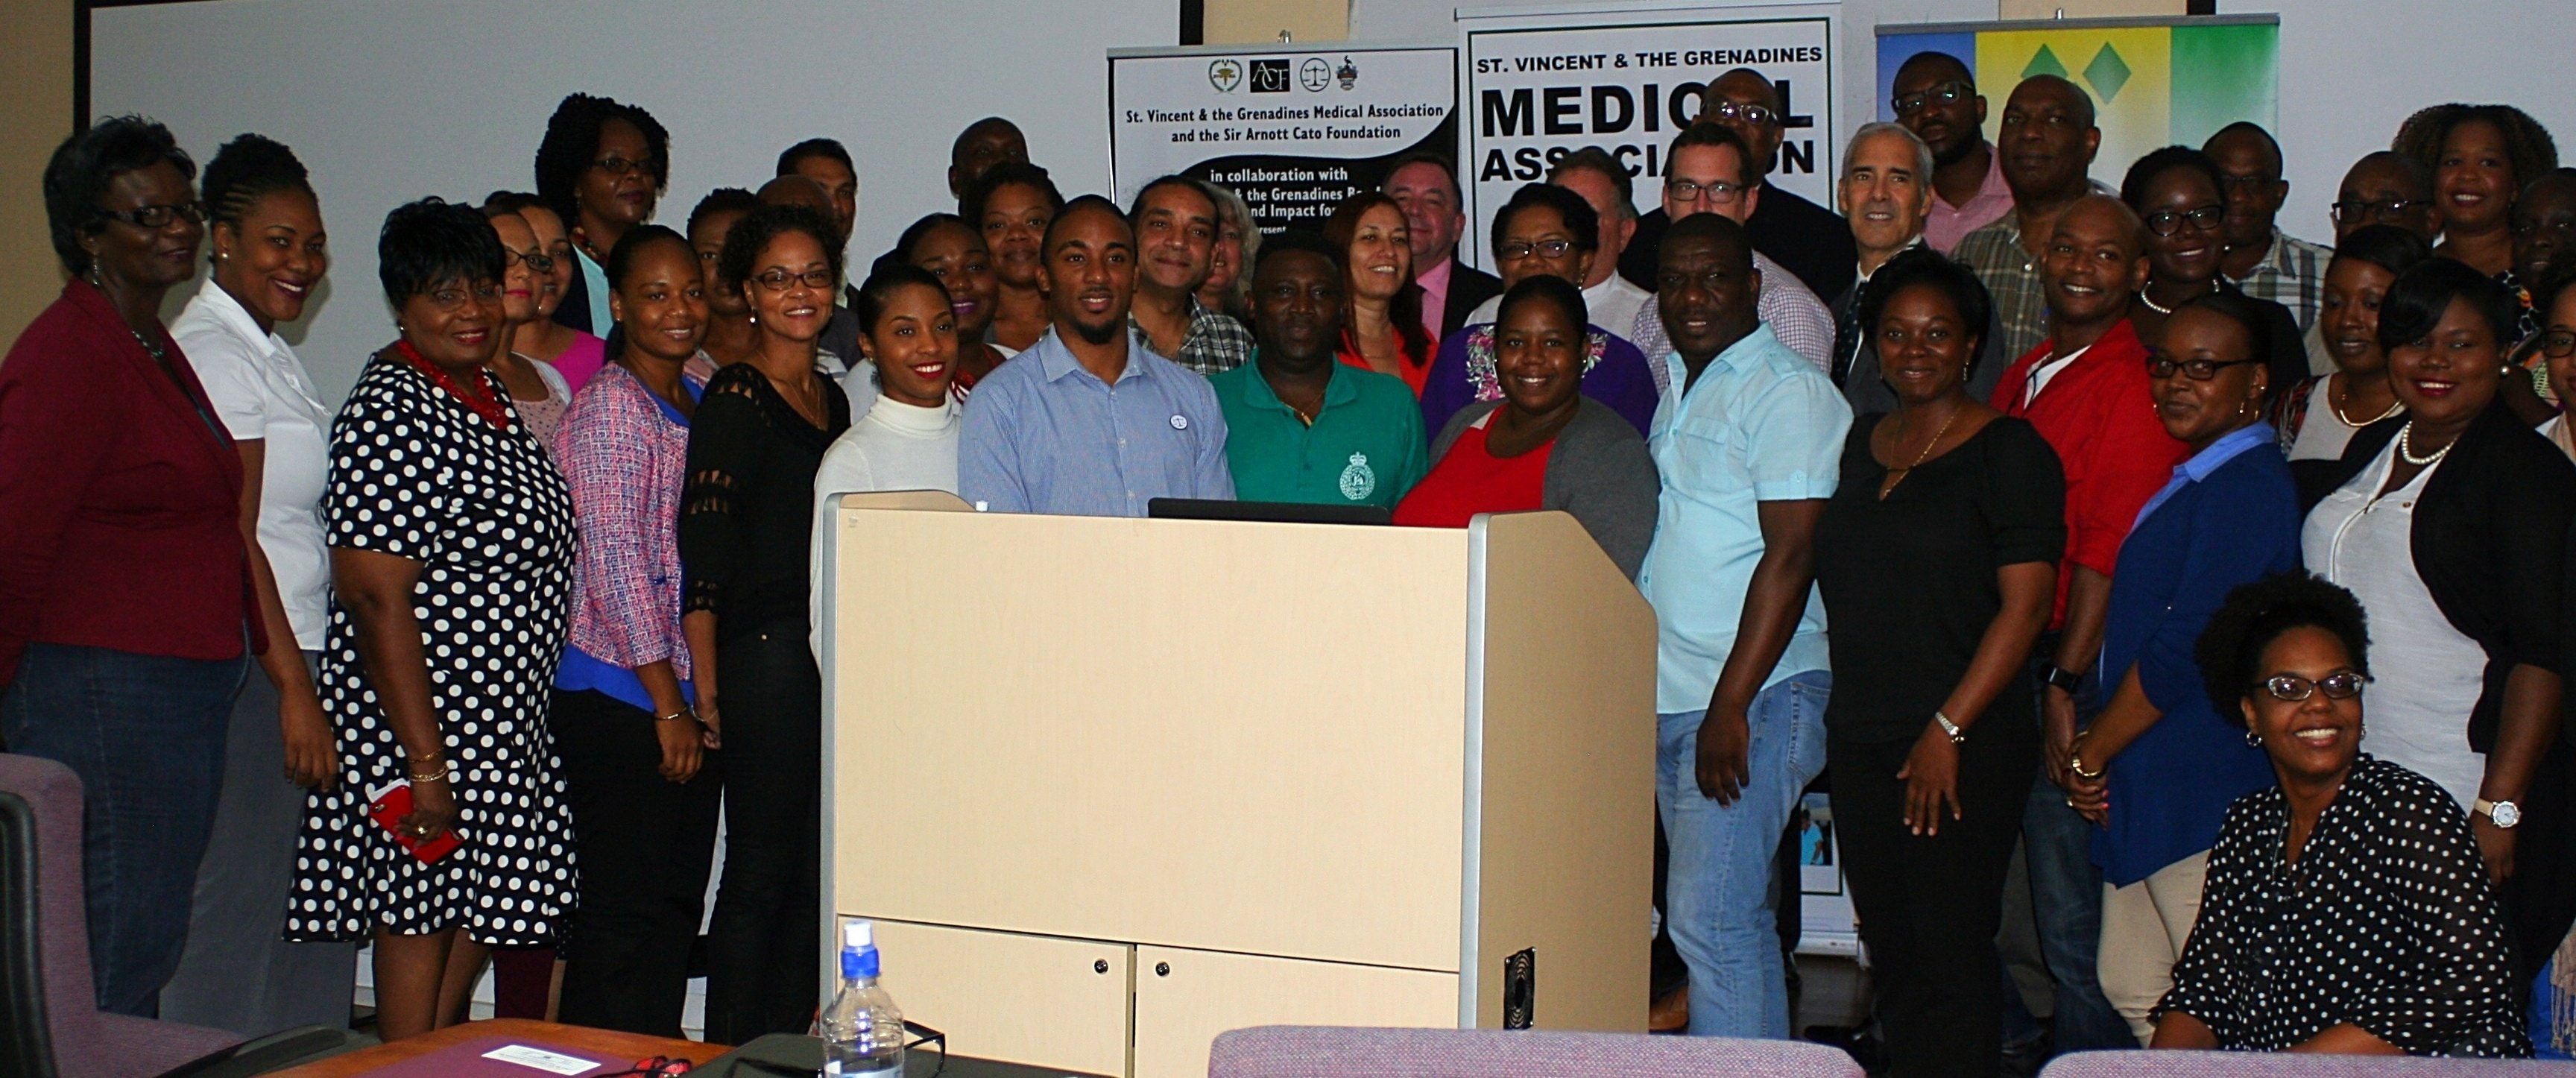 Some of the gathered attendees and presenters at Trinity School of Medicine